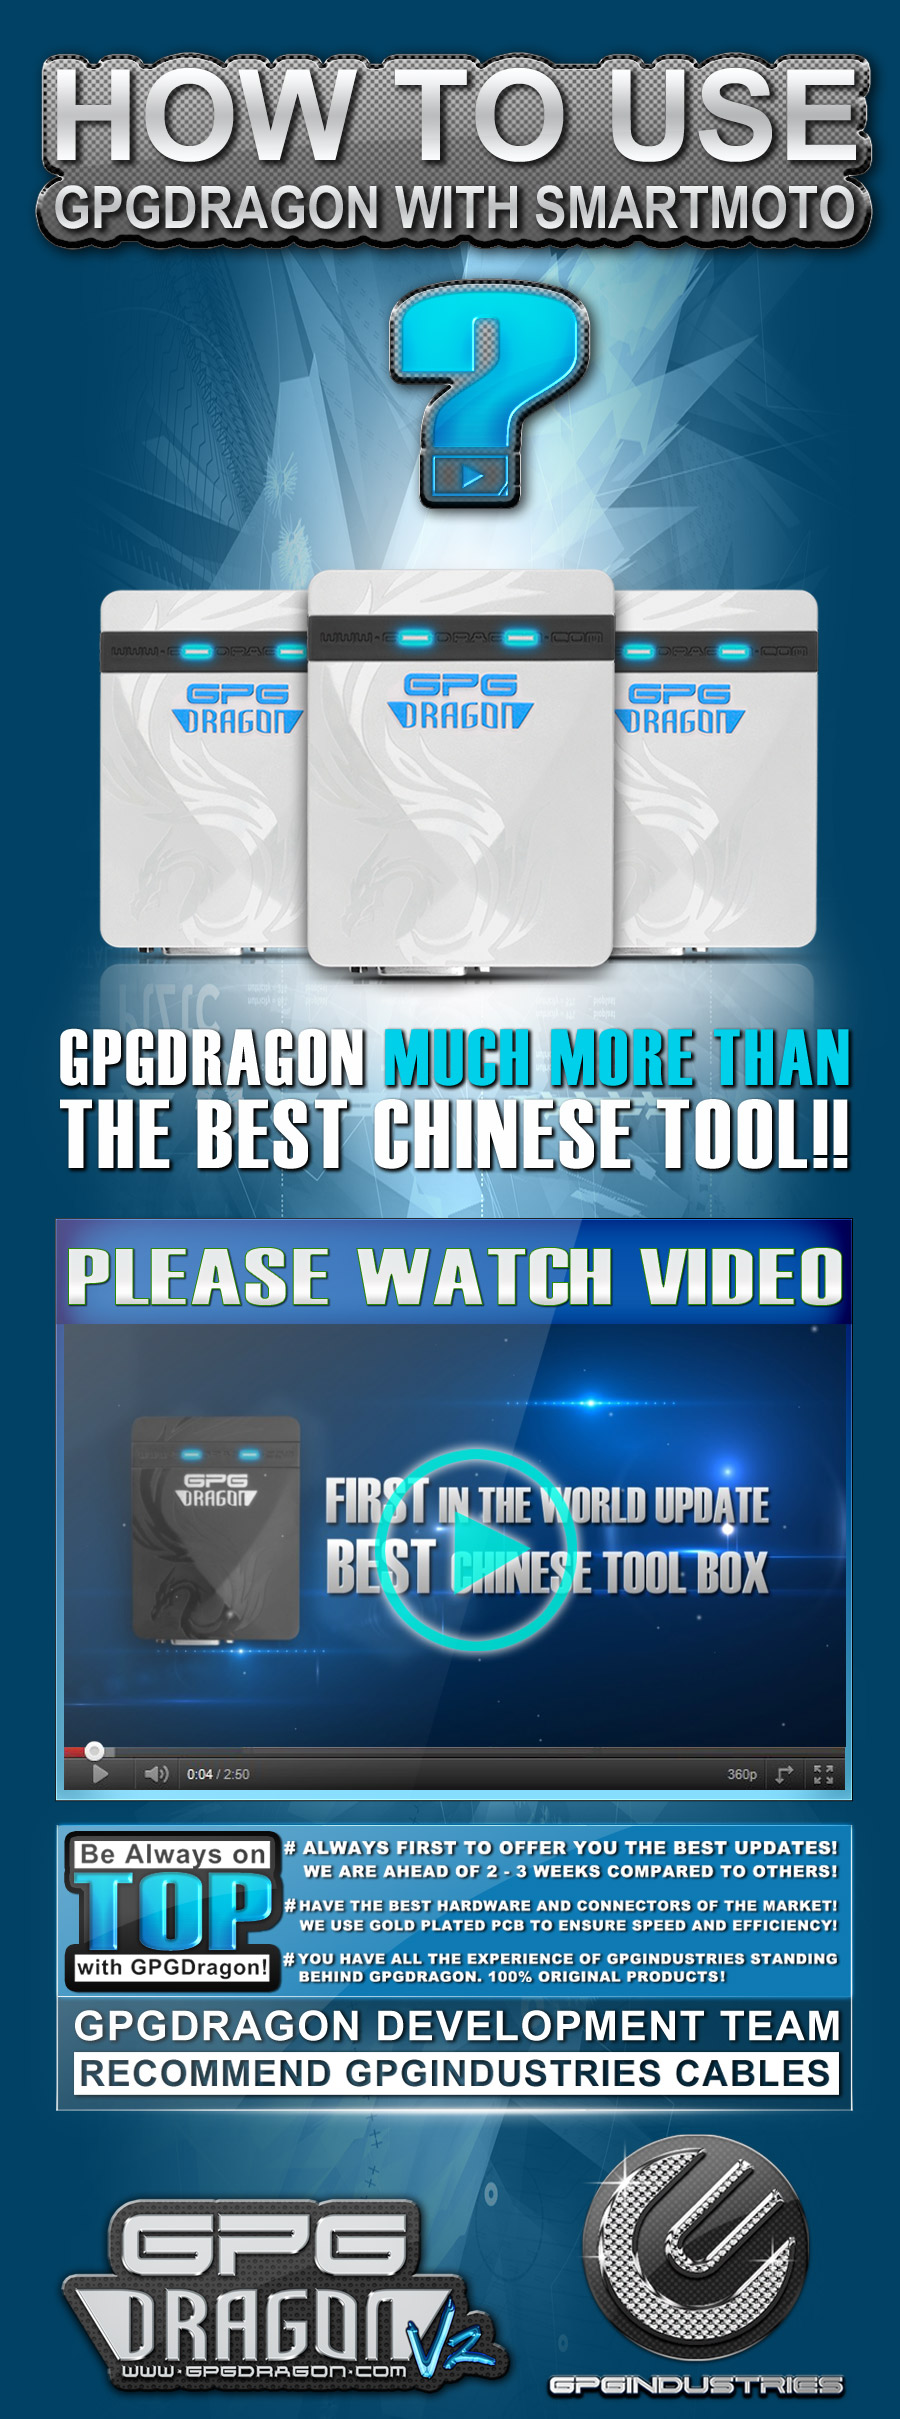 2011 09 22 How to use GPGDragon with Scard